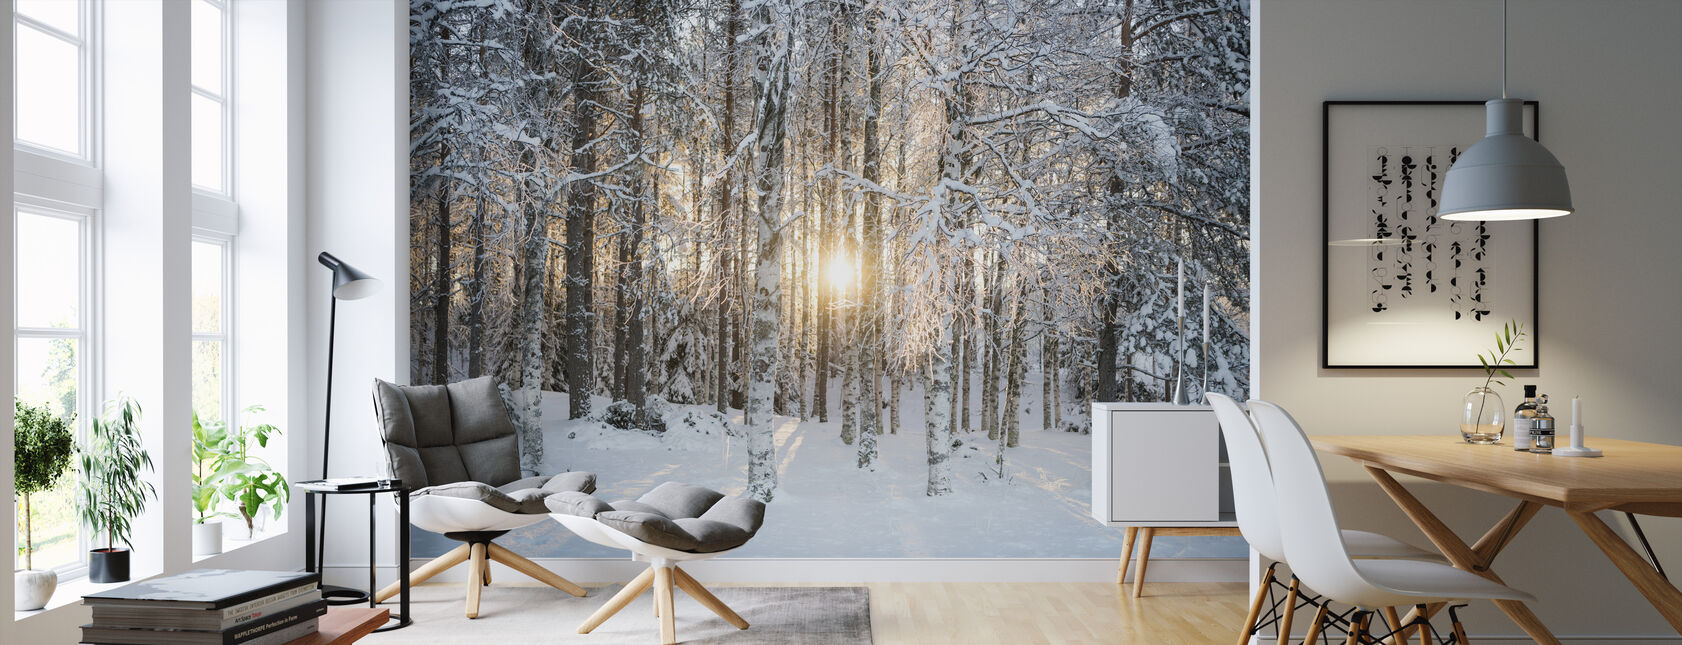 Winter Birches - Wallpaper - Living Room